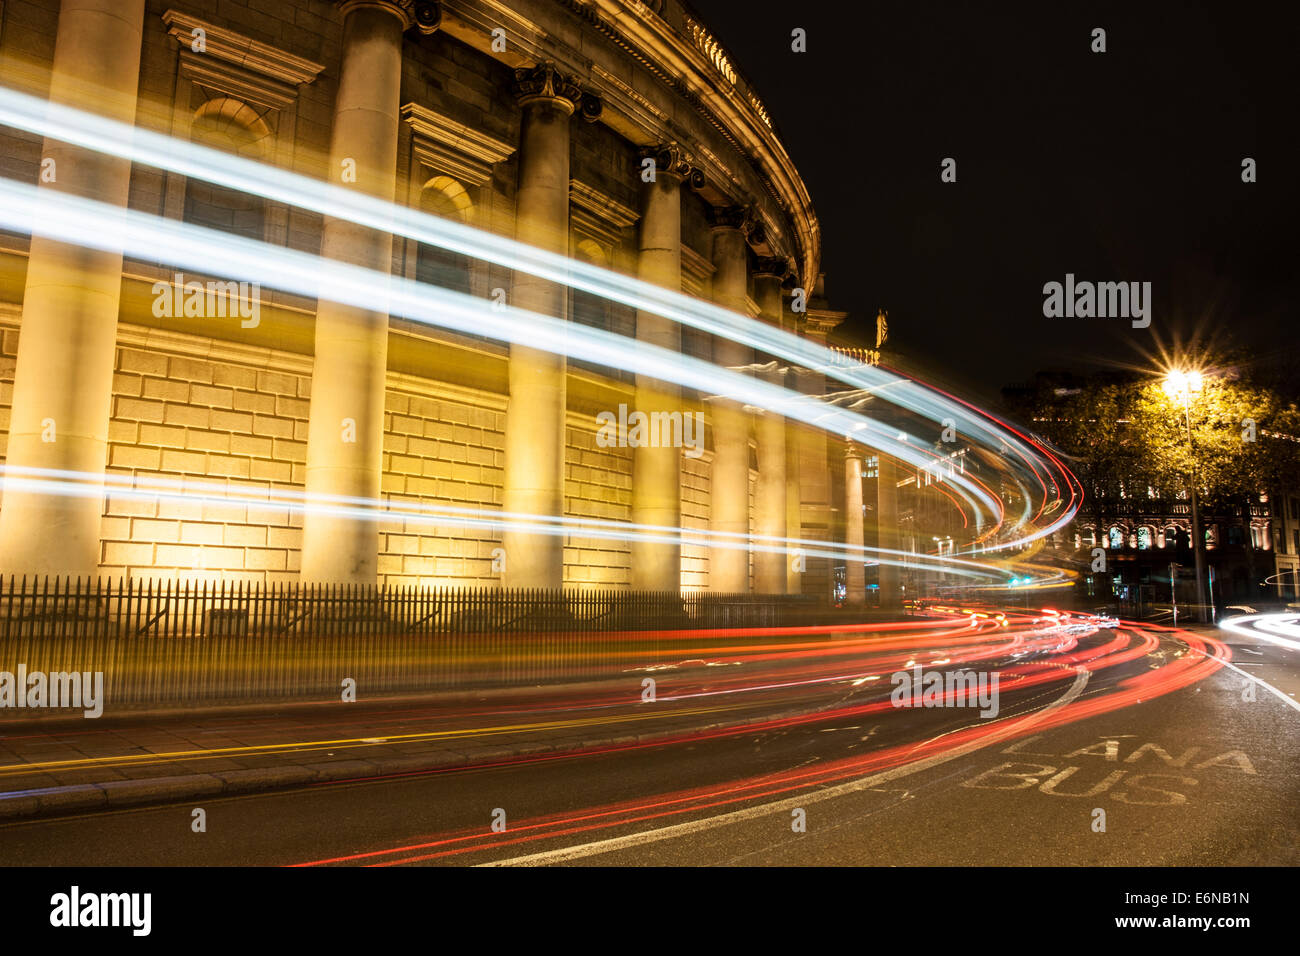 The Bank of Ireland building, Dame Street, Dublin with light streaks from passing traffic - Stock Image